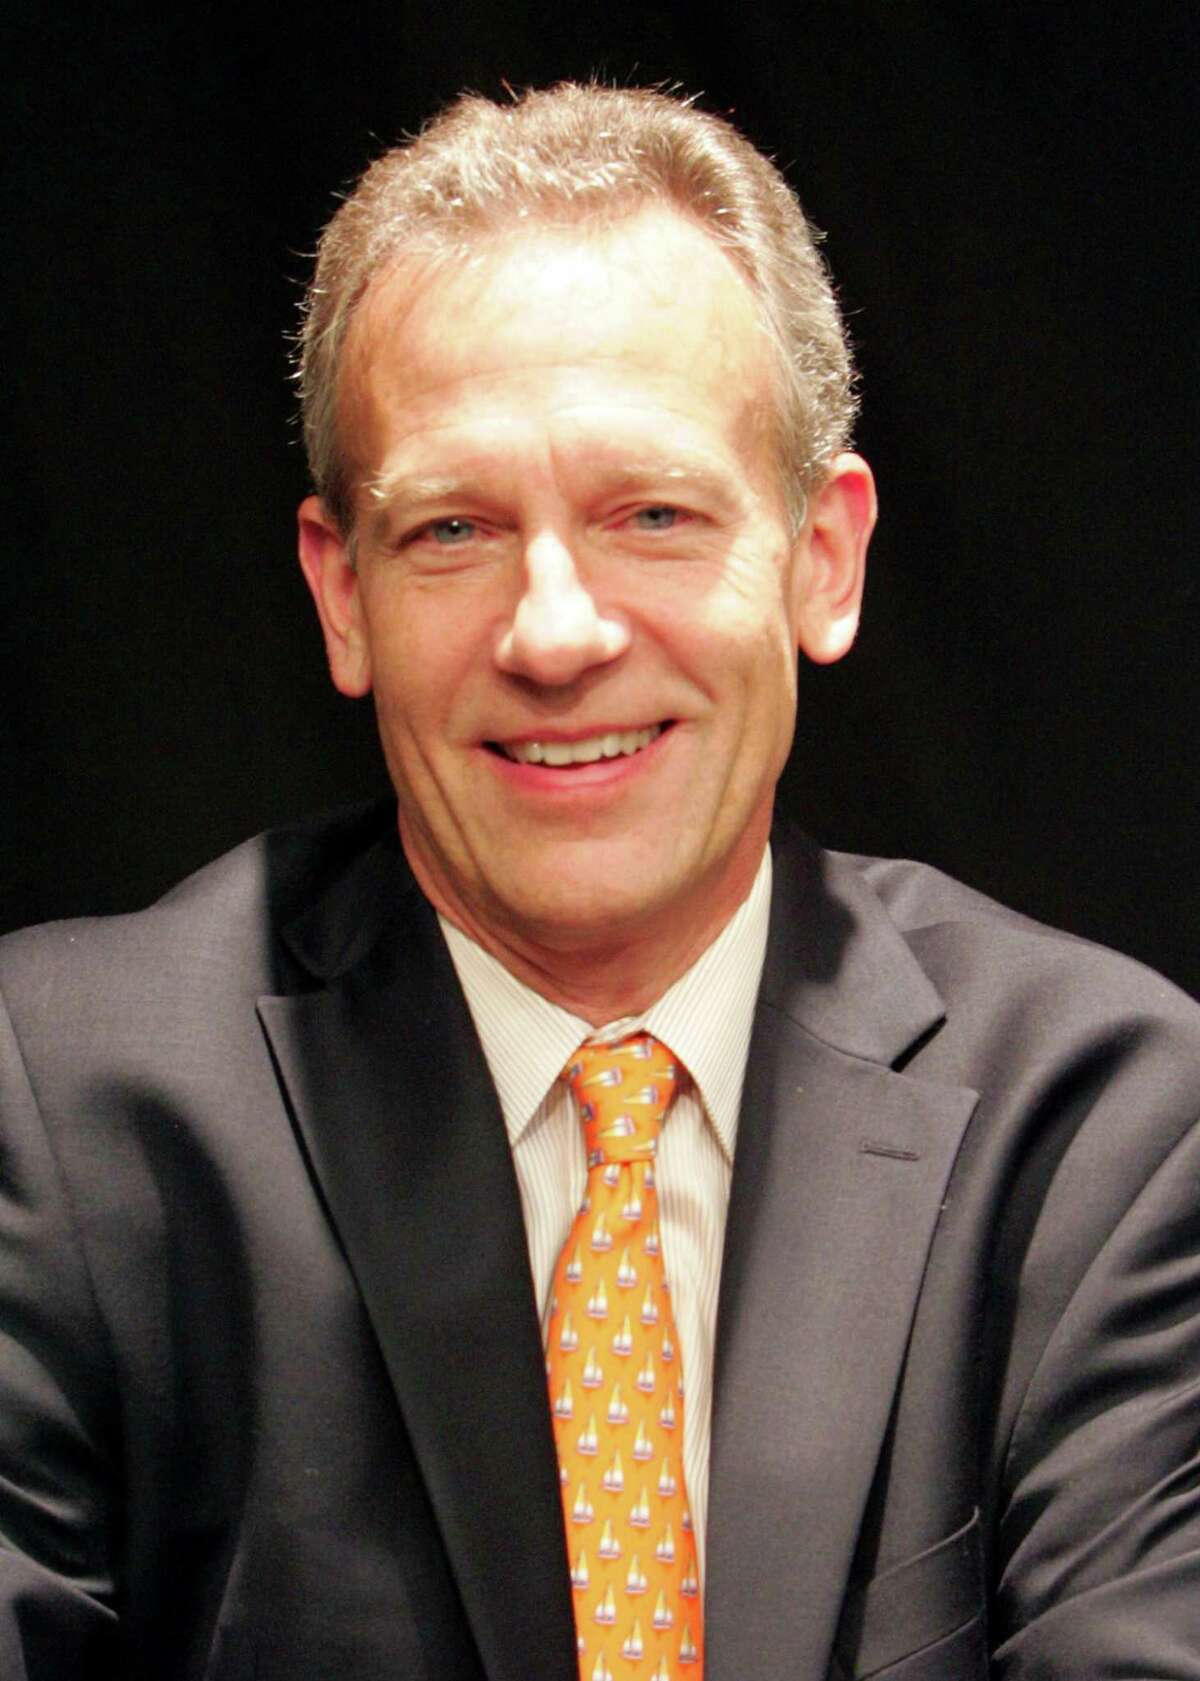 Andy George is a member of the Stamford Board of Education.